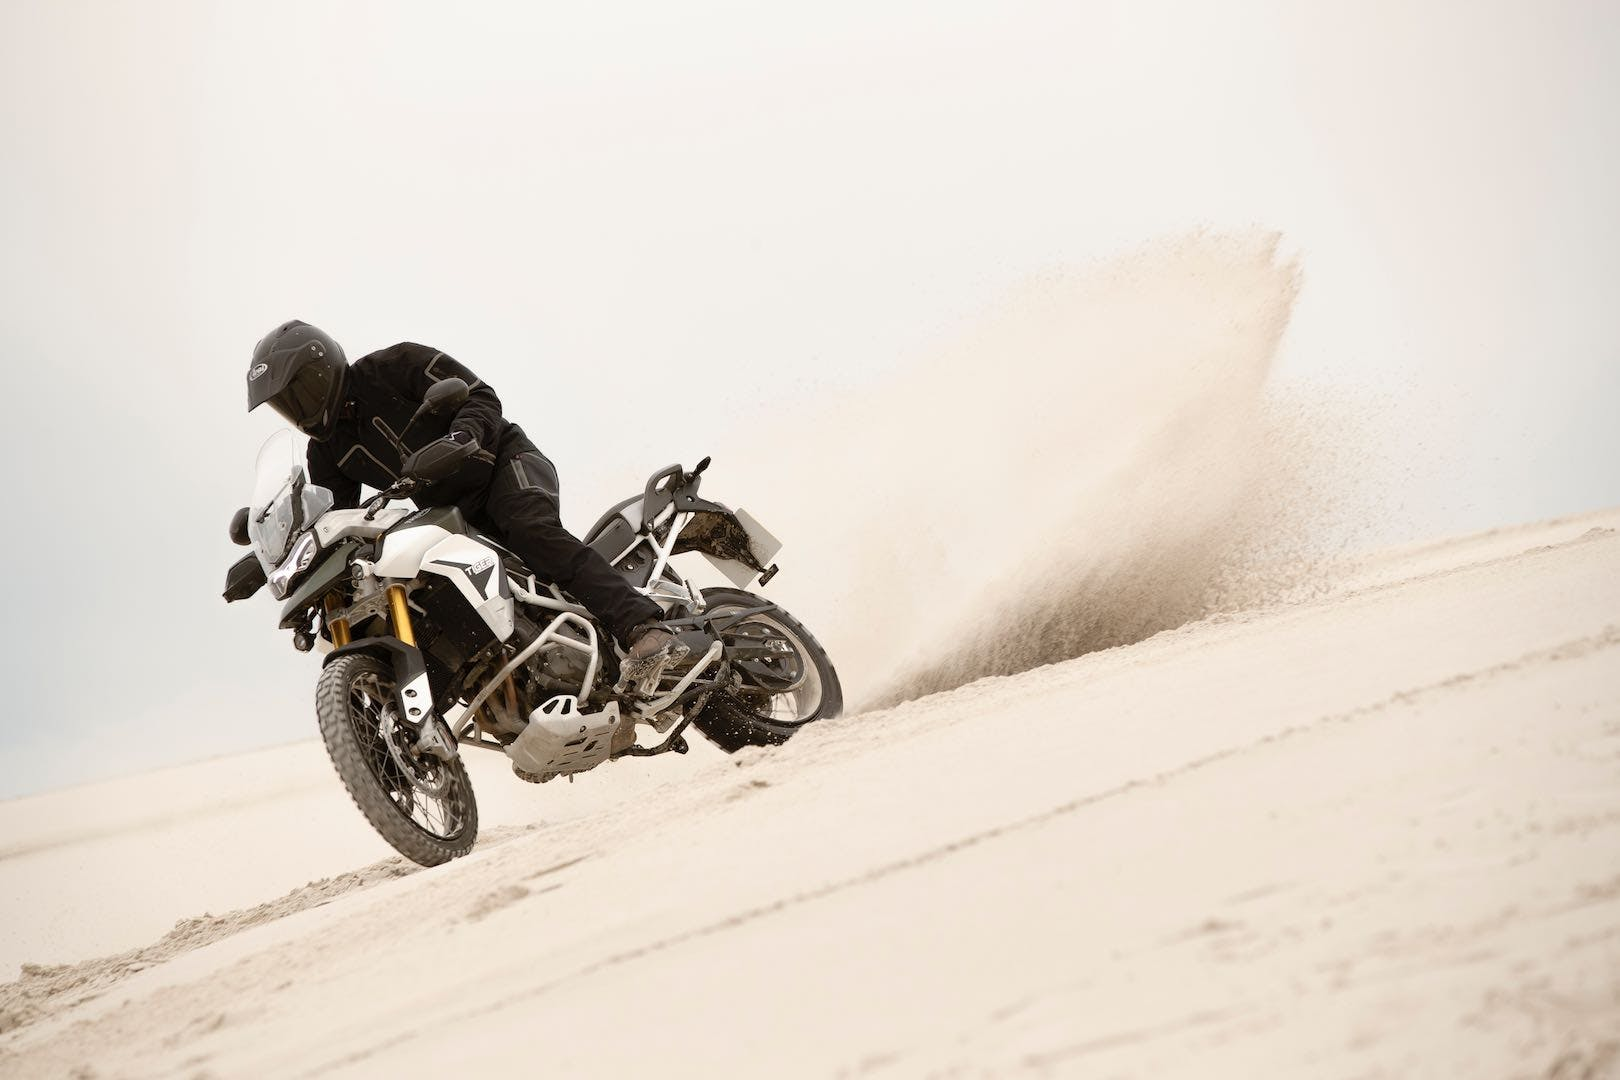 Tiger 900 Rally on off-road track